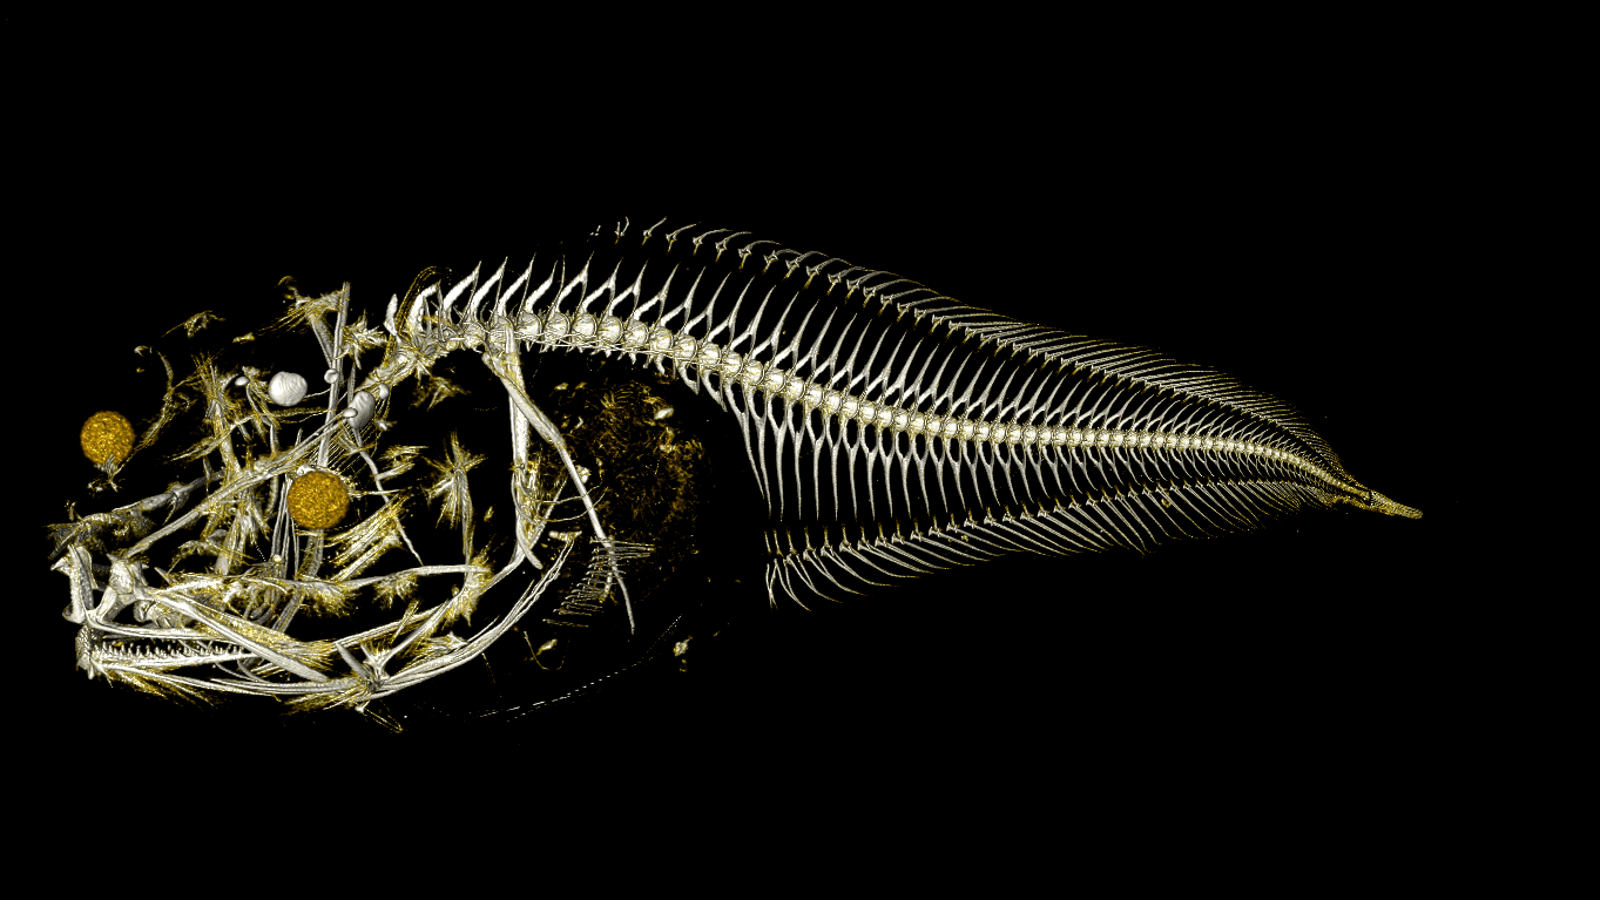 Three Freaky New Fish Species Discovered in One of the World's Deepest Trenches